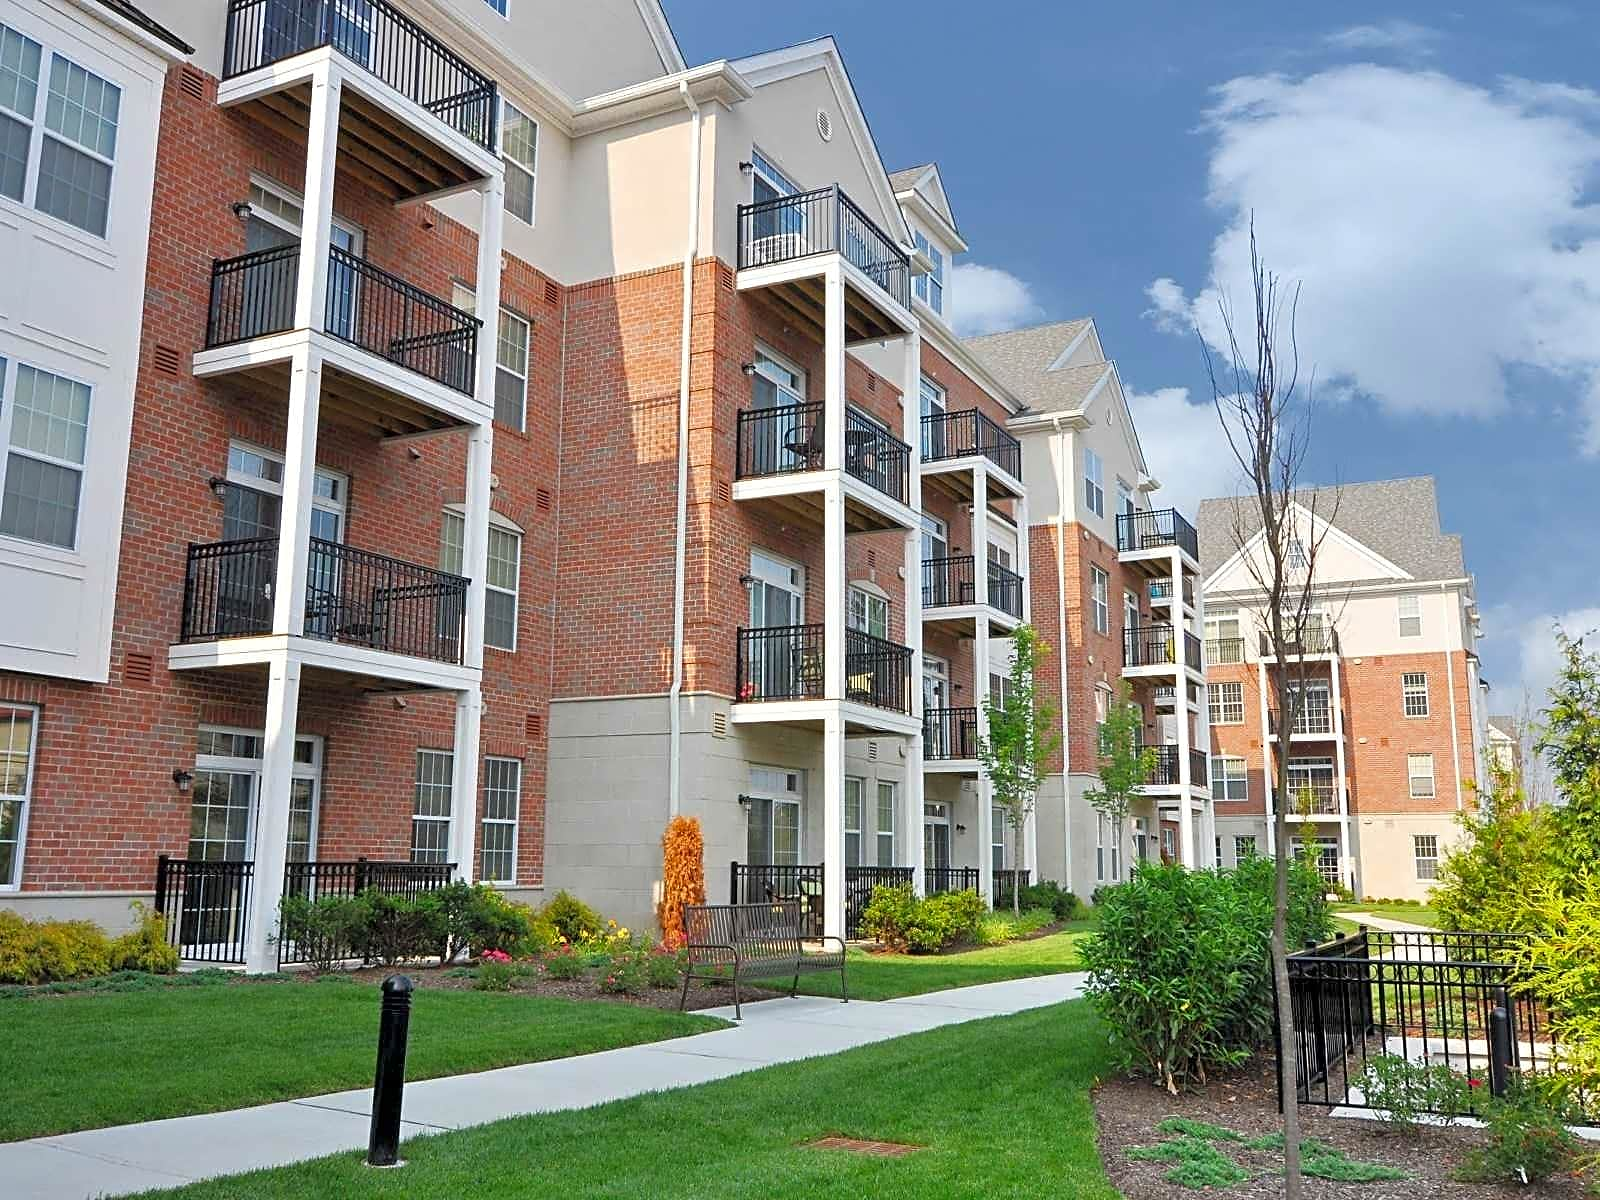 Apartments Near Rutgers Woodmont Station at Cranford for Rutgers University Students in New Brunswick, NJ